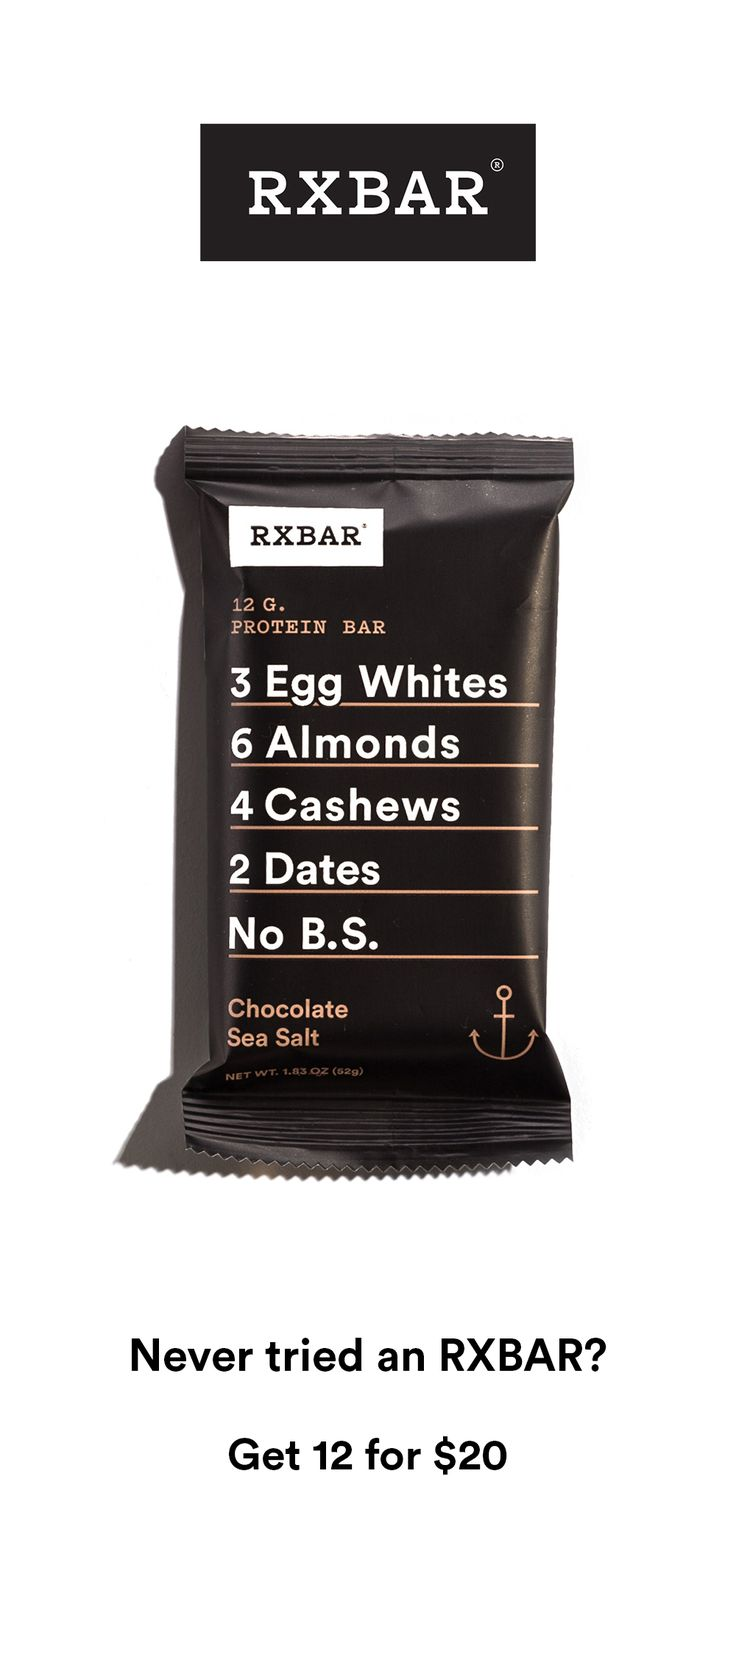 For a limited time get 12 bars for $20 + 2 free Mint Chocolate bars + free shipping. RXBARs are whole food protein bars made with real ingredients. Just real food that tastes good and is good for you. Each delicious bar packs 12g of protein and 5g of fiber in under 210 calories.